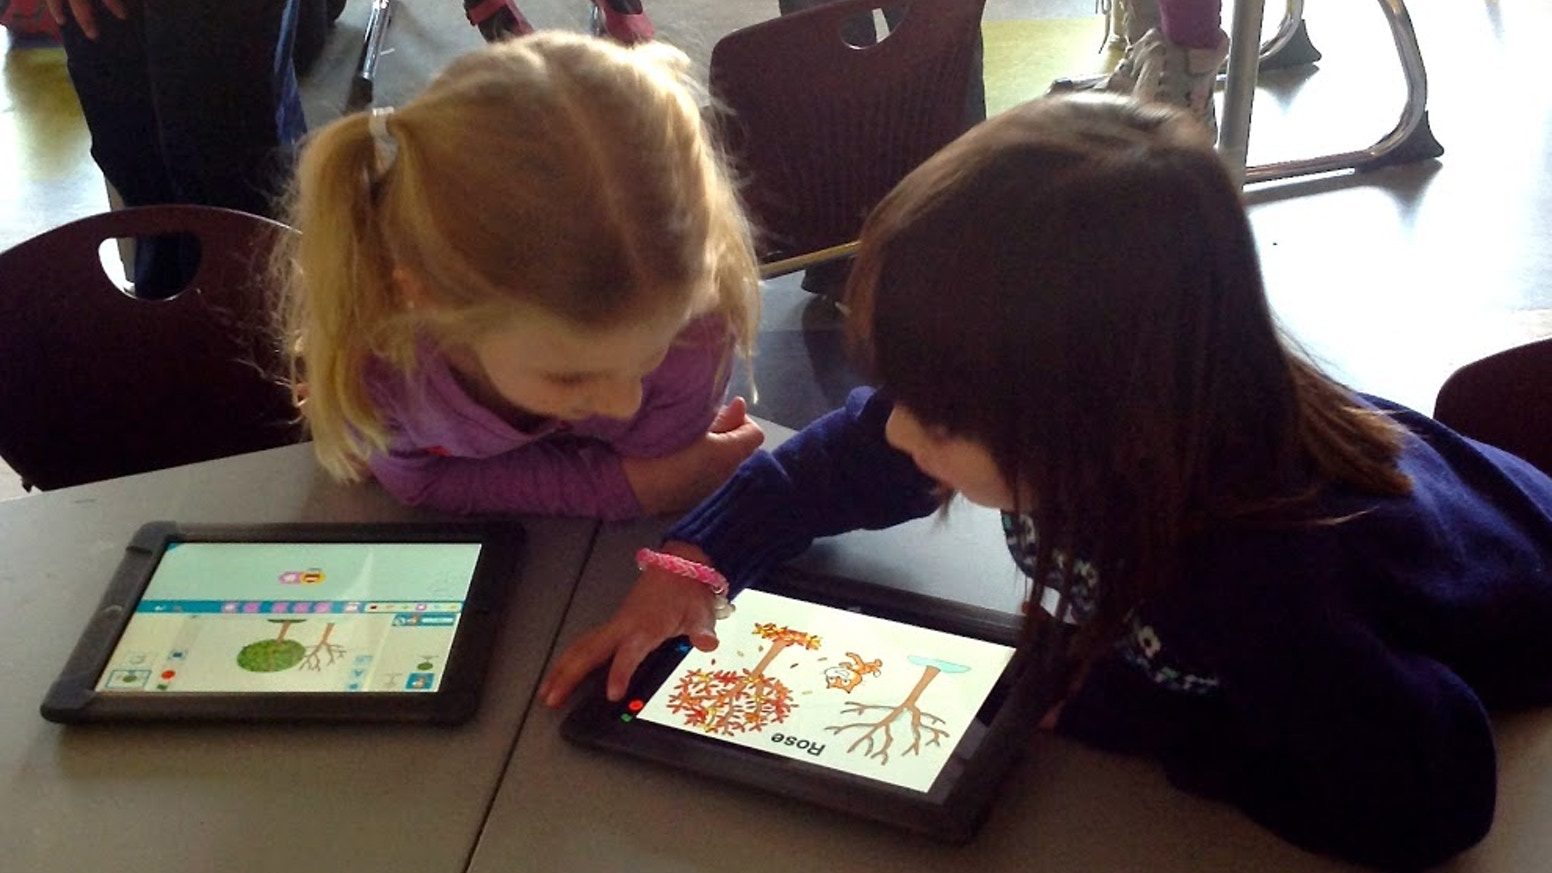 Coding is the new literacy. With ScratchJr, young children (ages 5-7) learn to program their own interactive stories and games. Want to download the app? See scratchjr.org